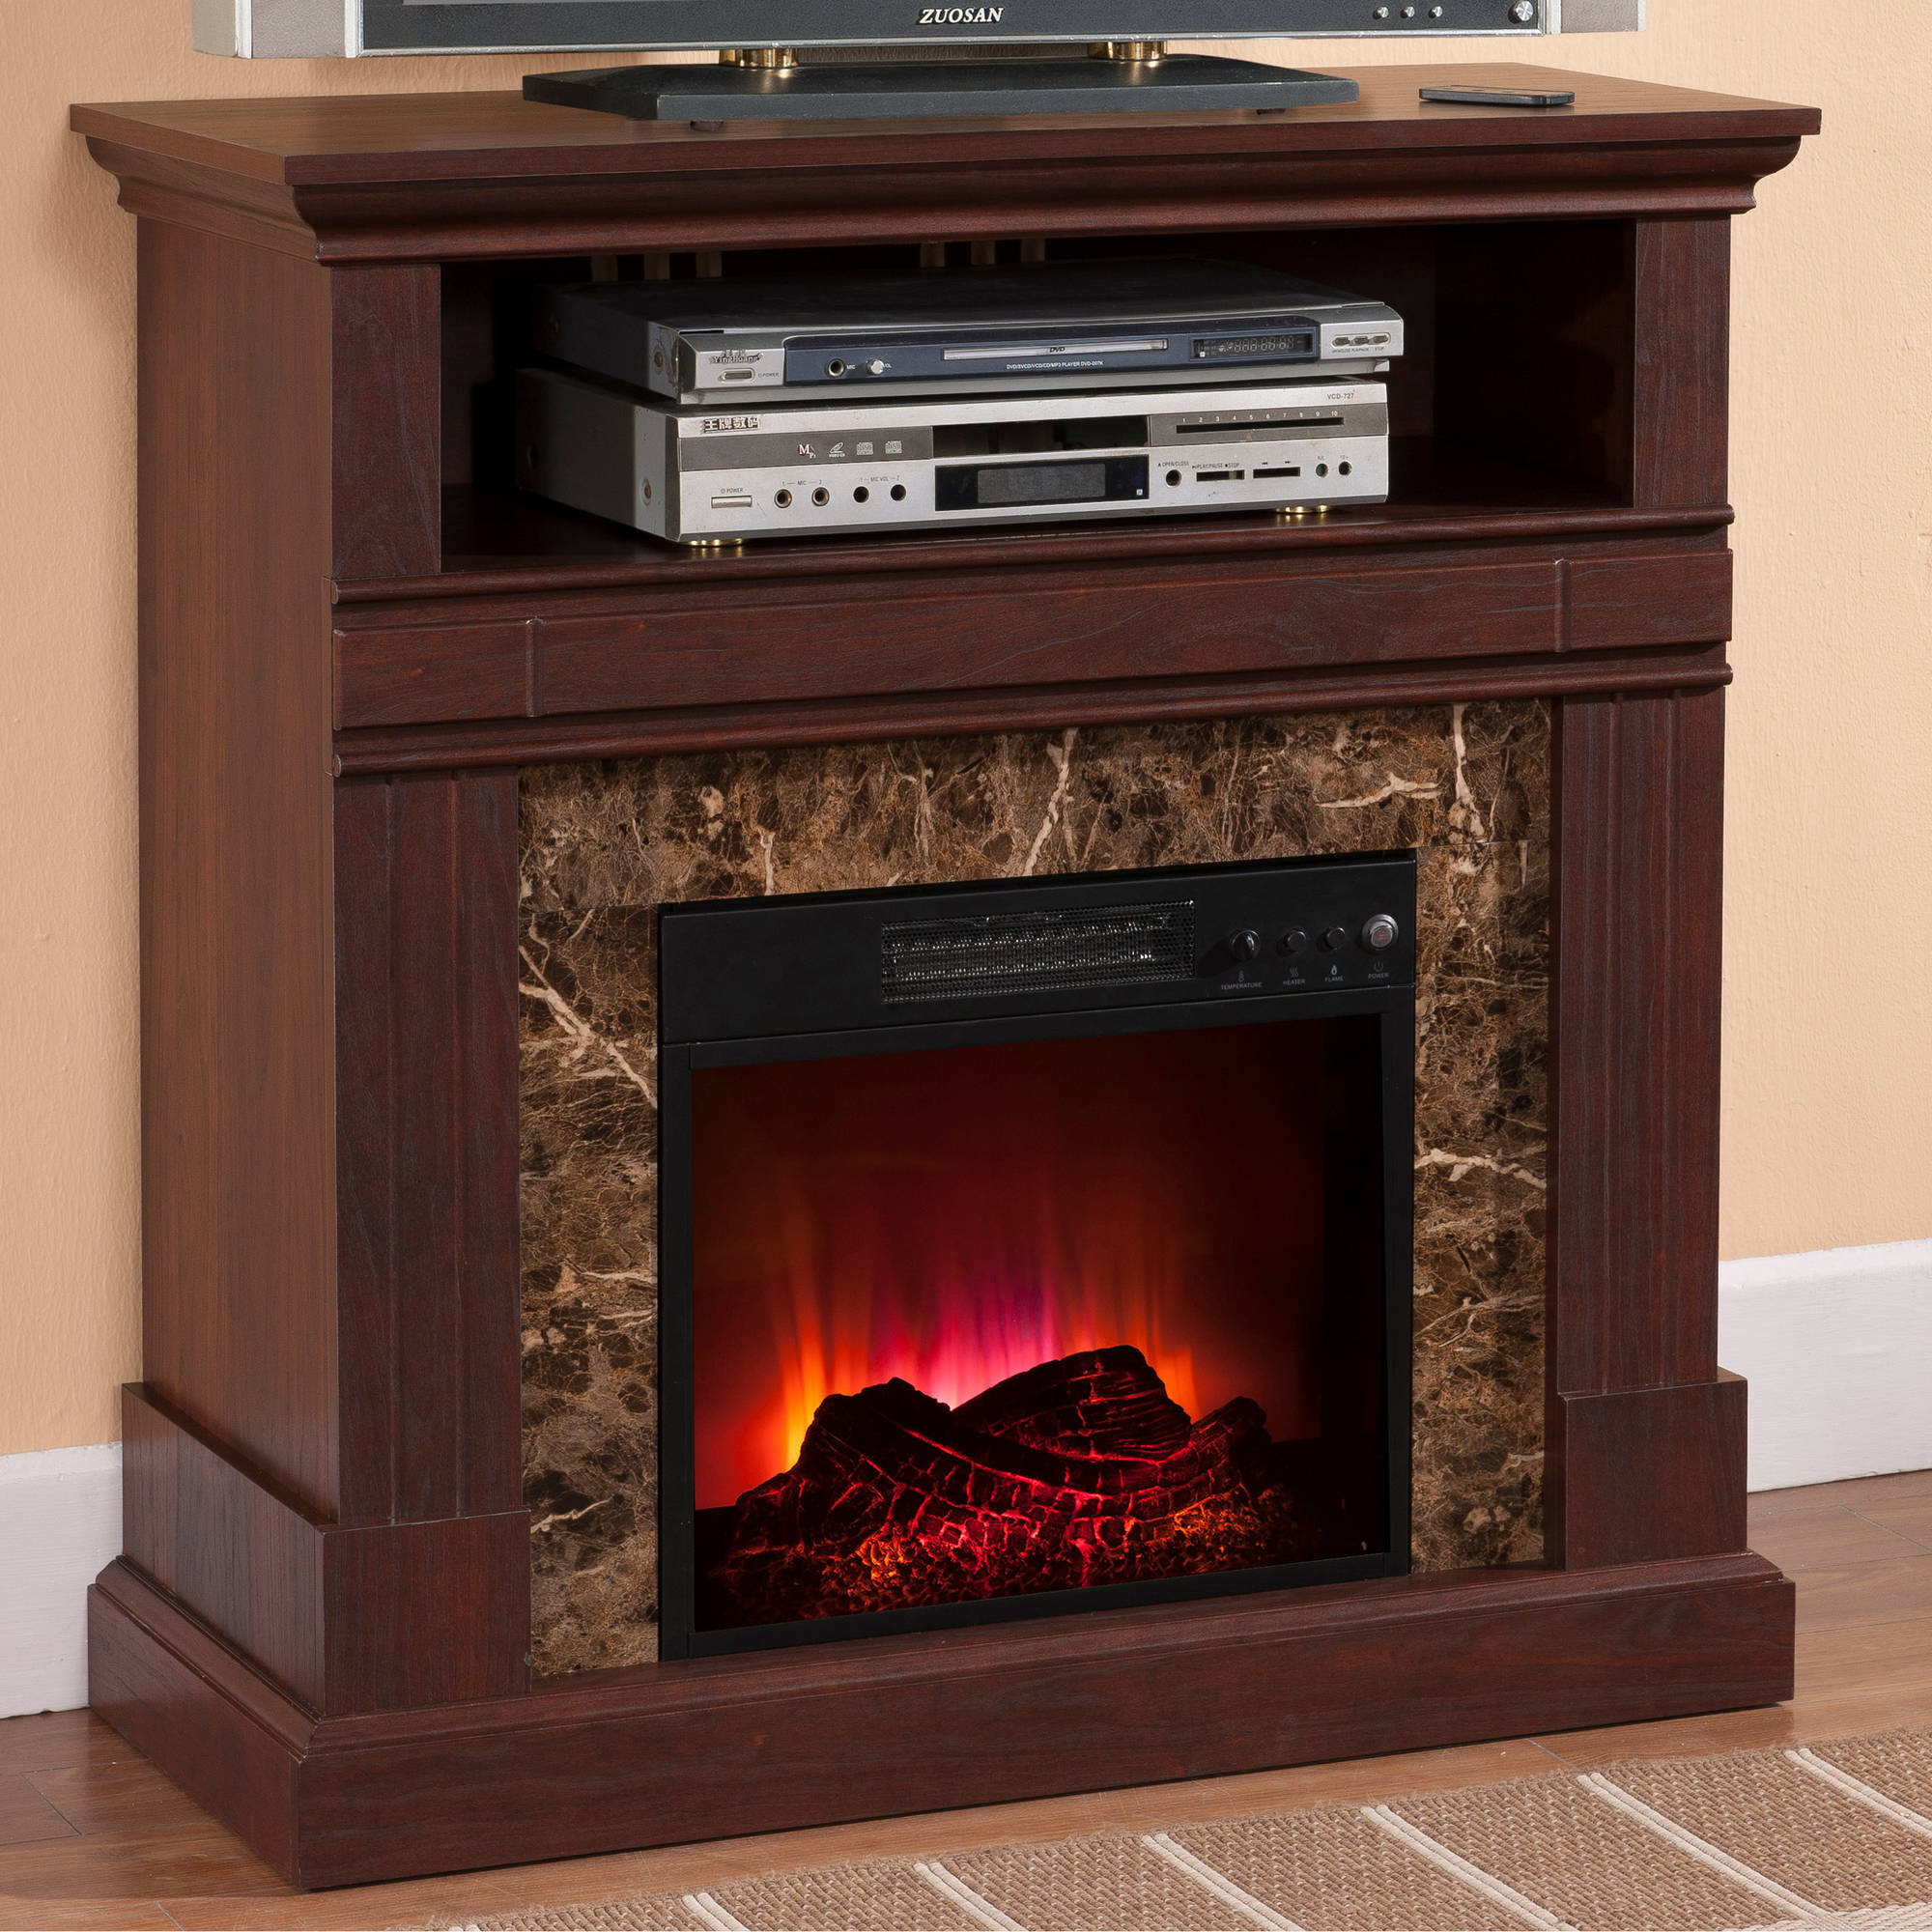 Electric Fireplaces For Sale At Walmart Prokonian Electric Fireplace With 36